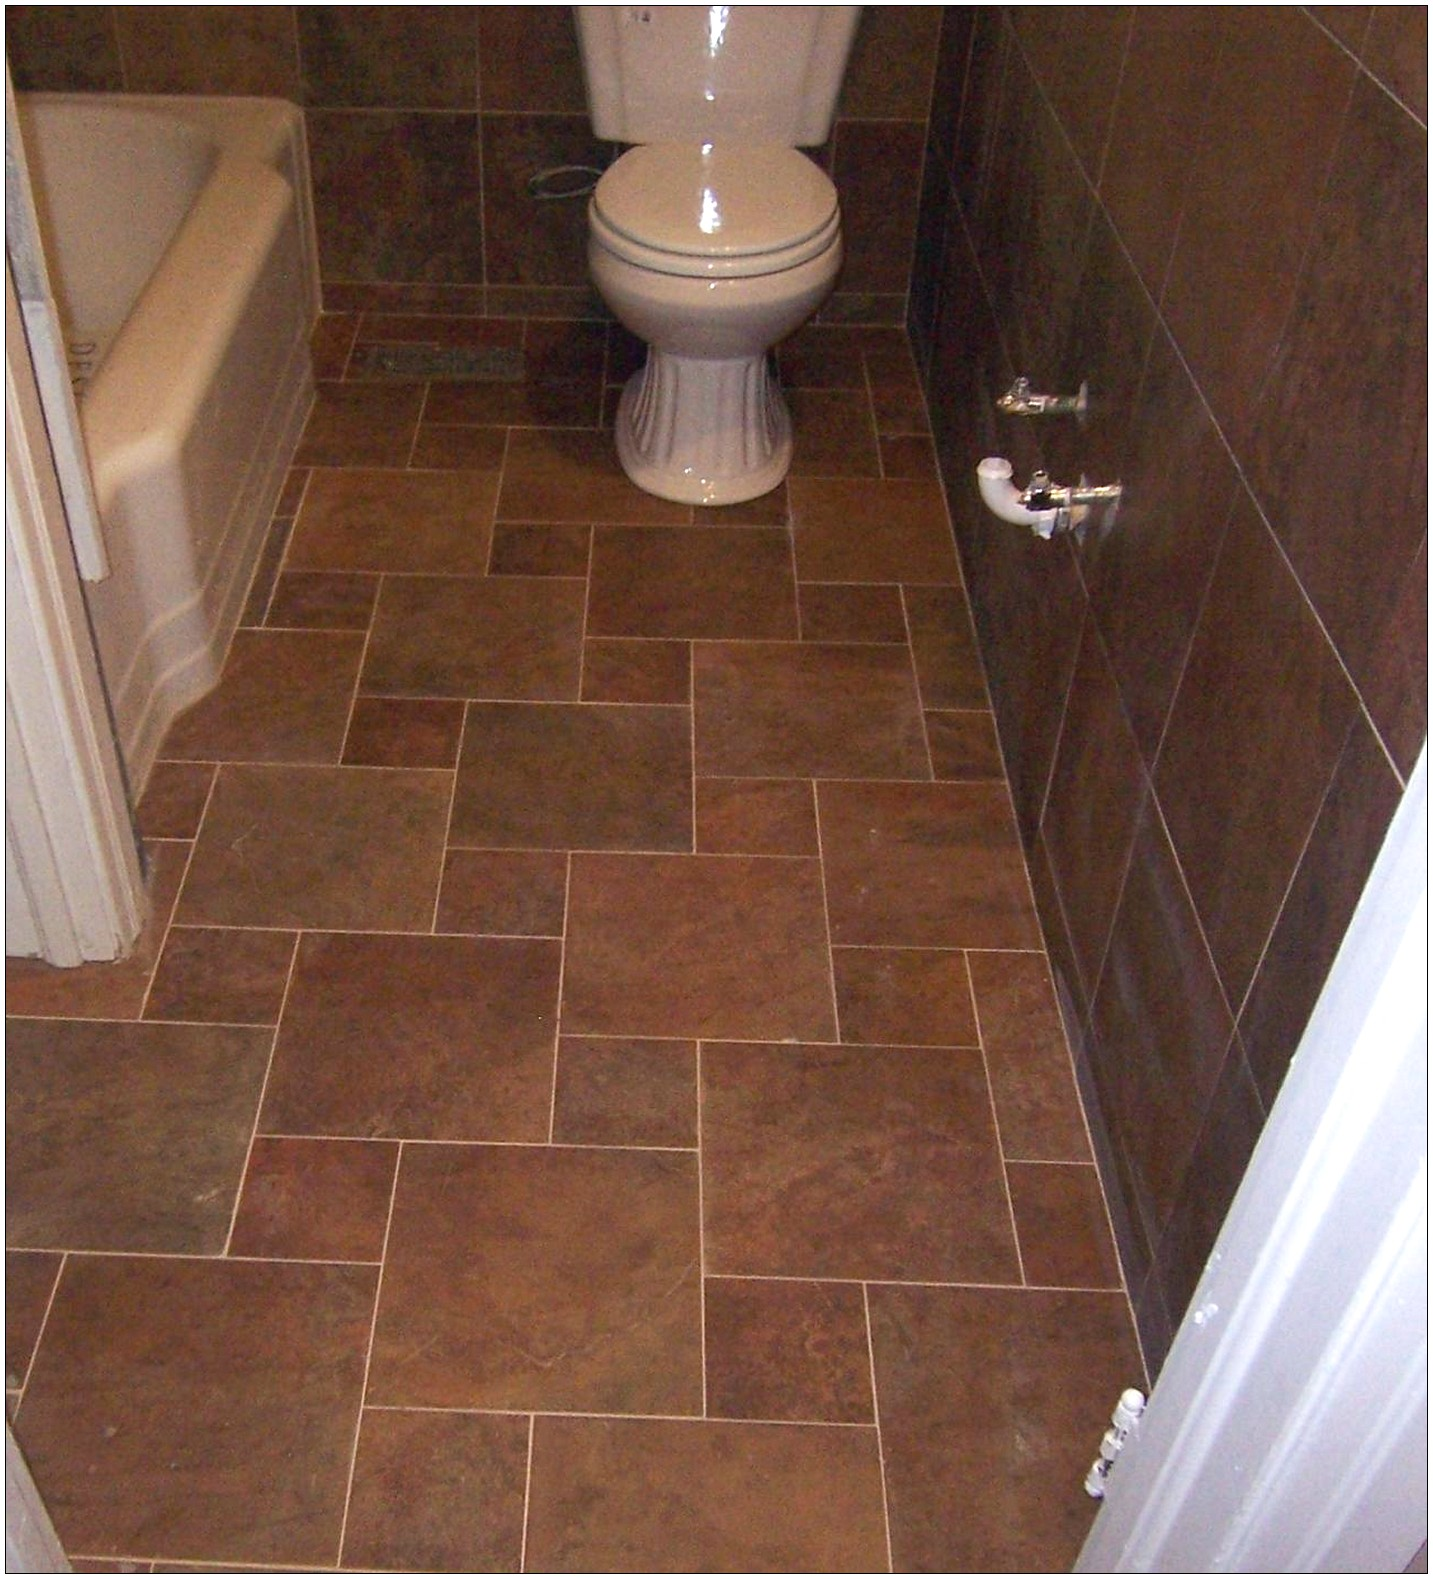 Bathroom Floor Tiling Ideas: 25 Wonderful Ideas And Pictures Of Decorative Bathroom